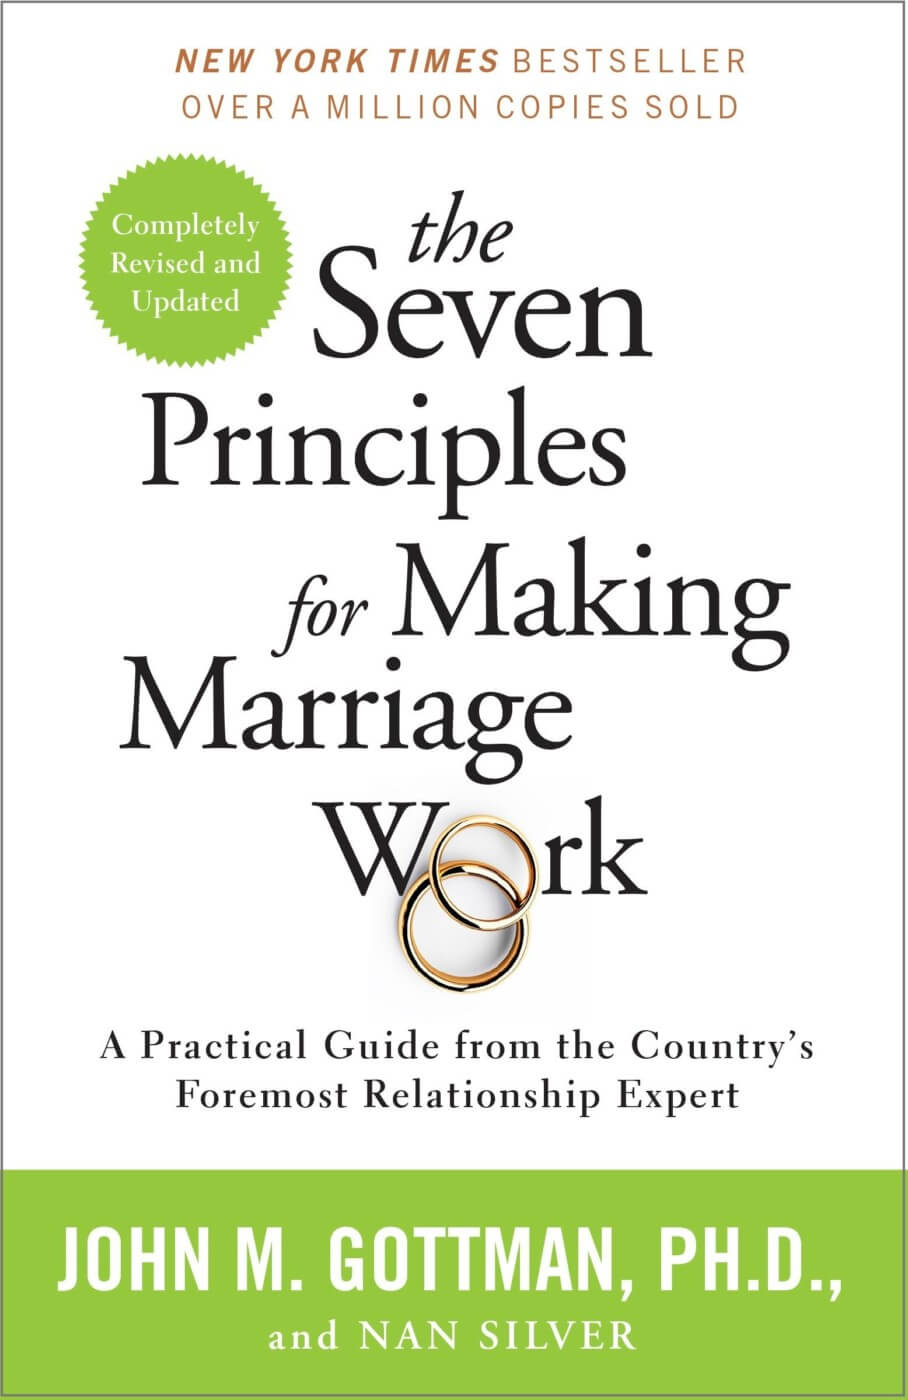 Books on relationships - 7 principles that make marriage work